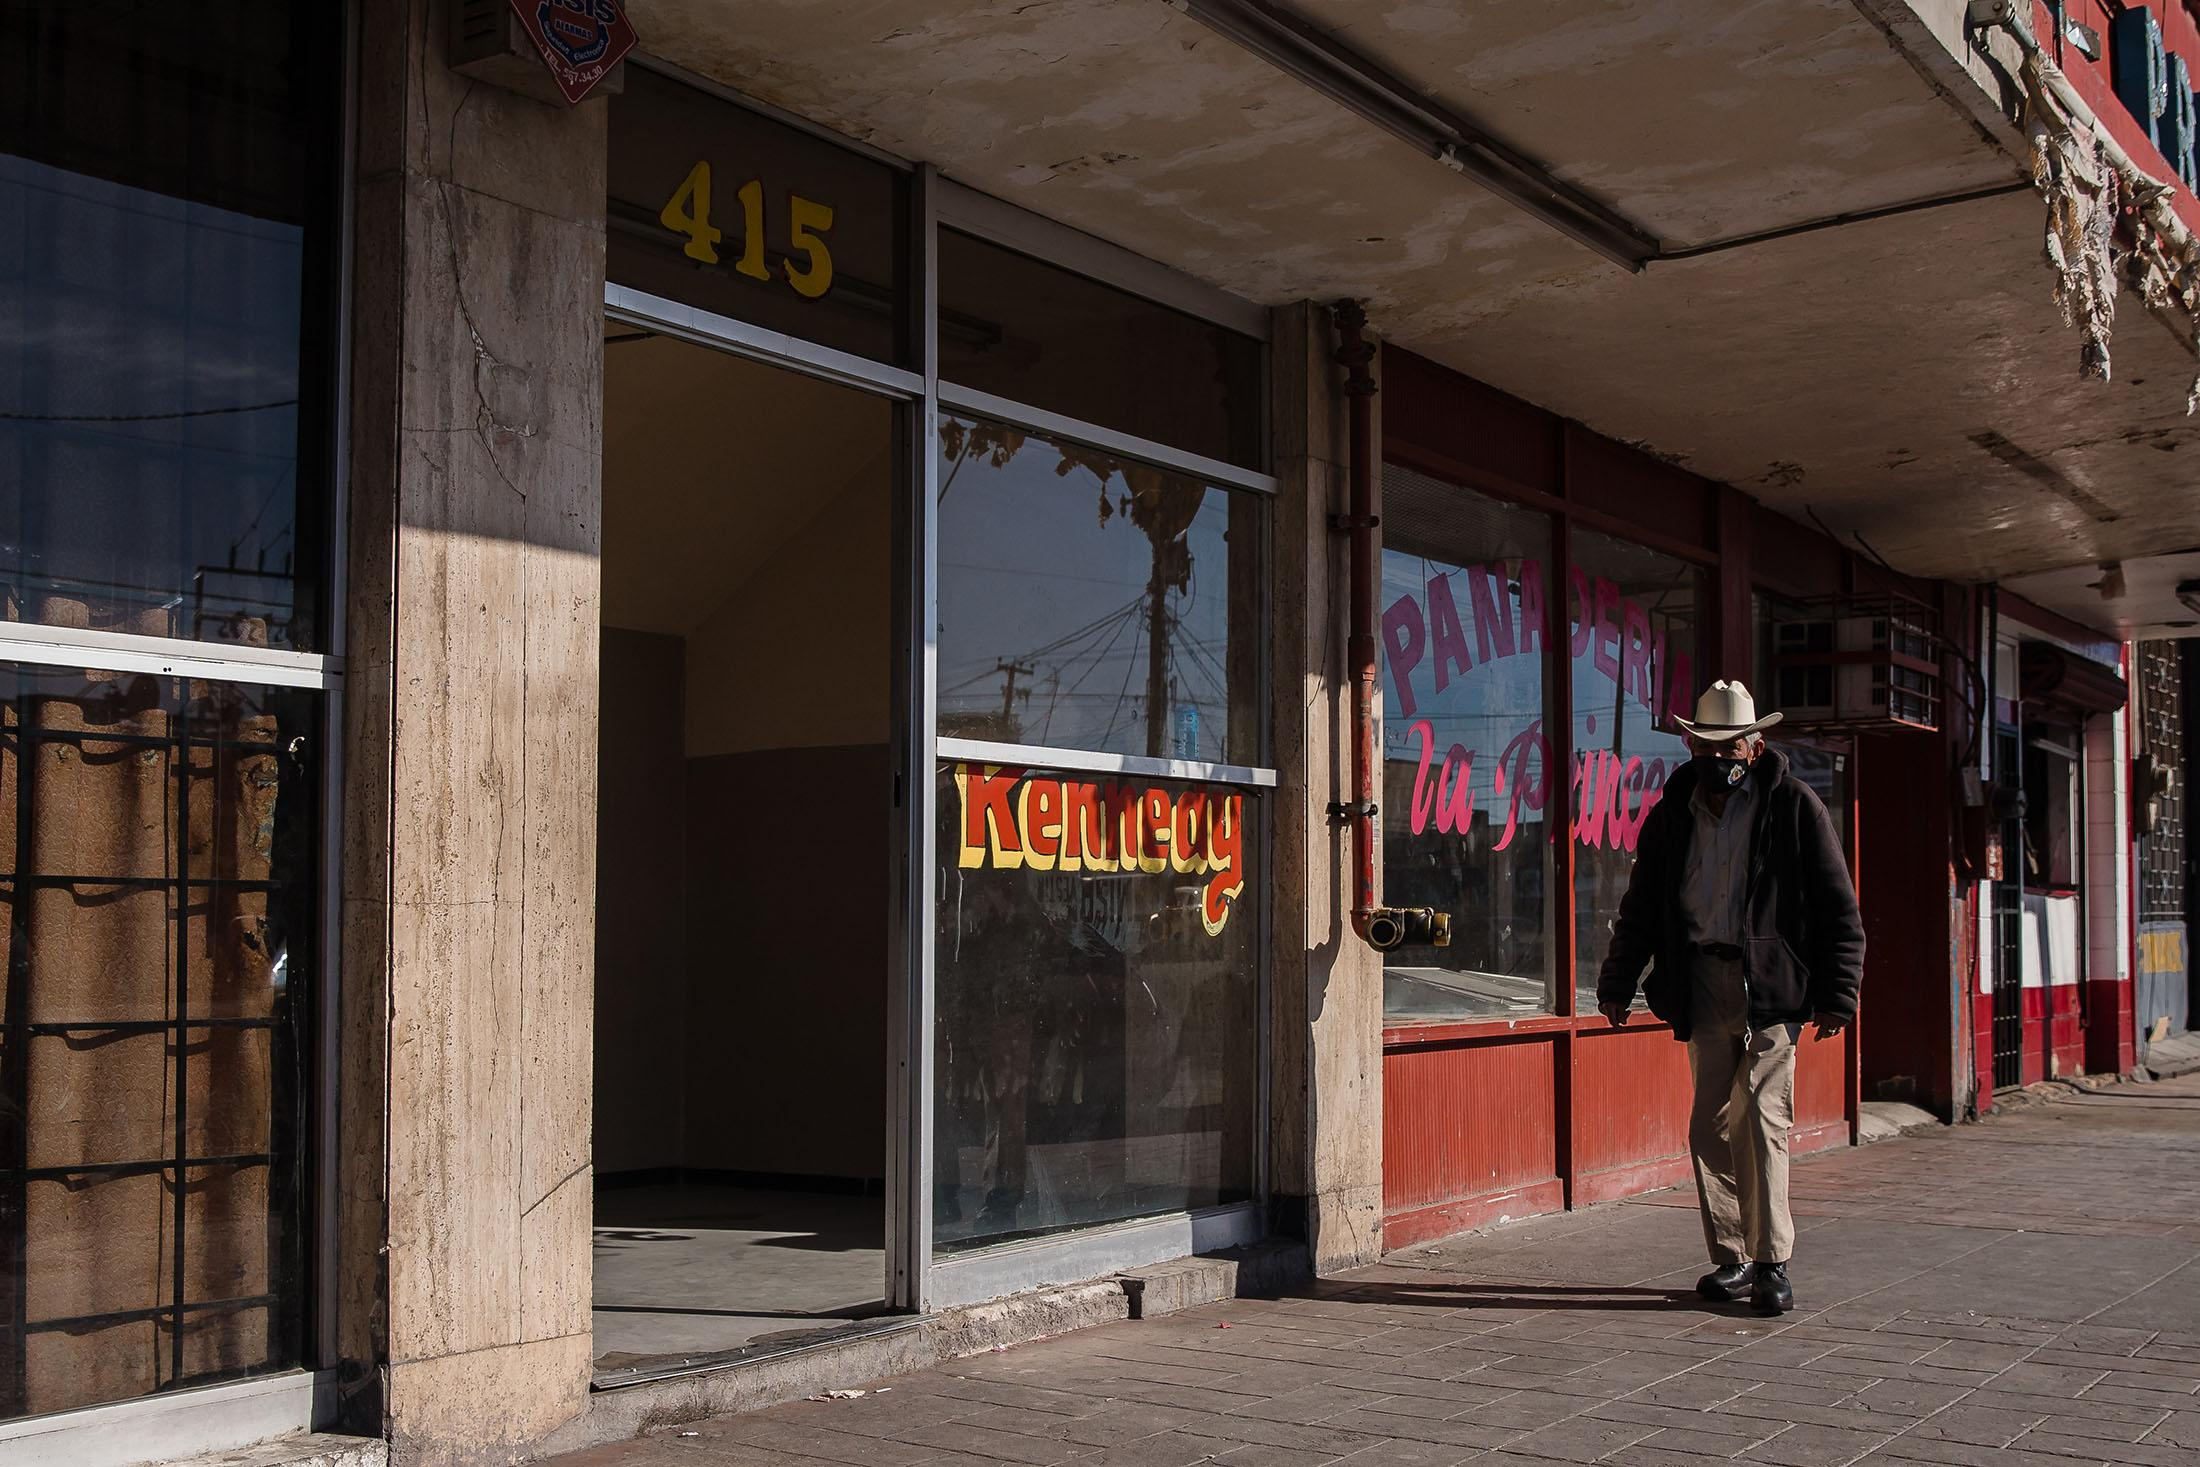 A man walks passed Hotel Kennedy in Mexicali, Mexico. Several of the migrants had been staying at cheap downtown hotels in Mexicali before preparing to cross the border.